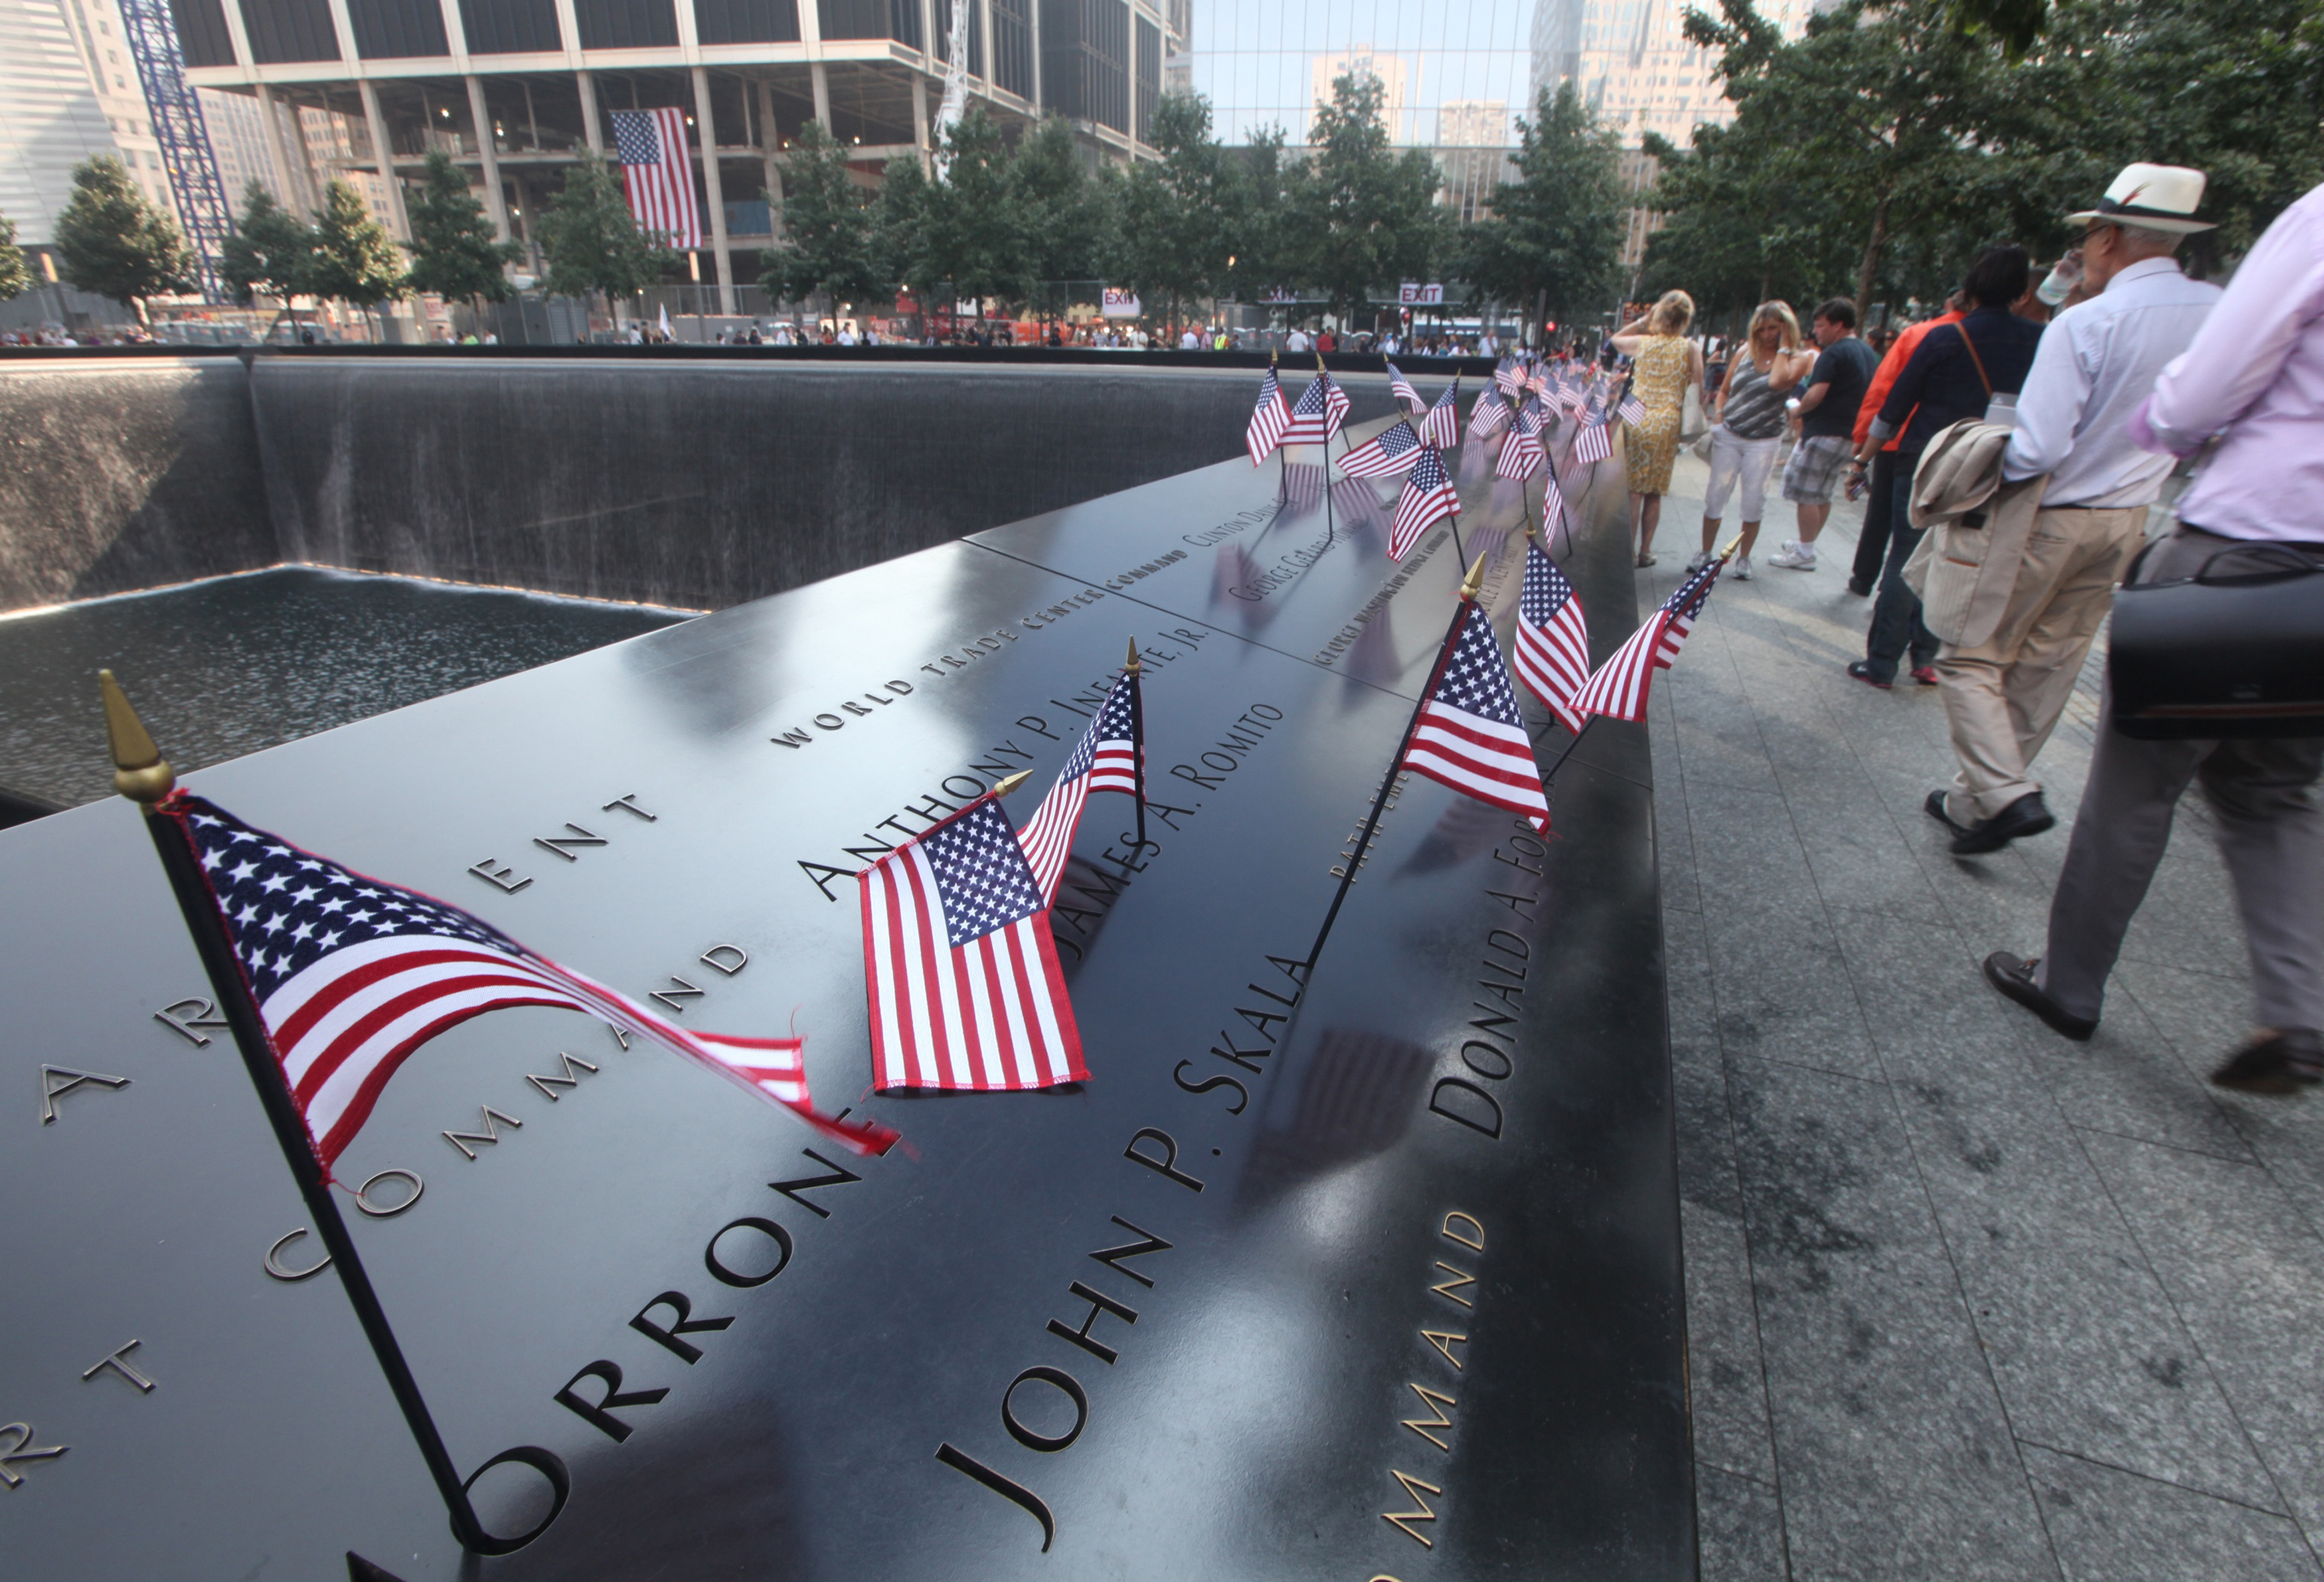 911-world-trade-center-memorial